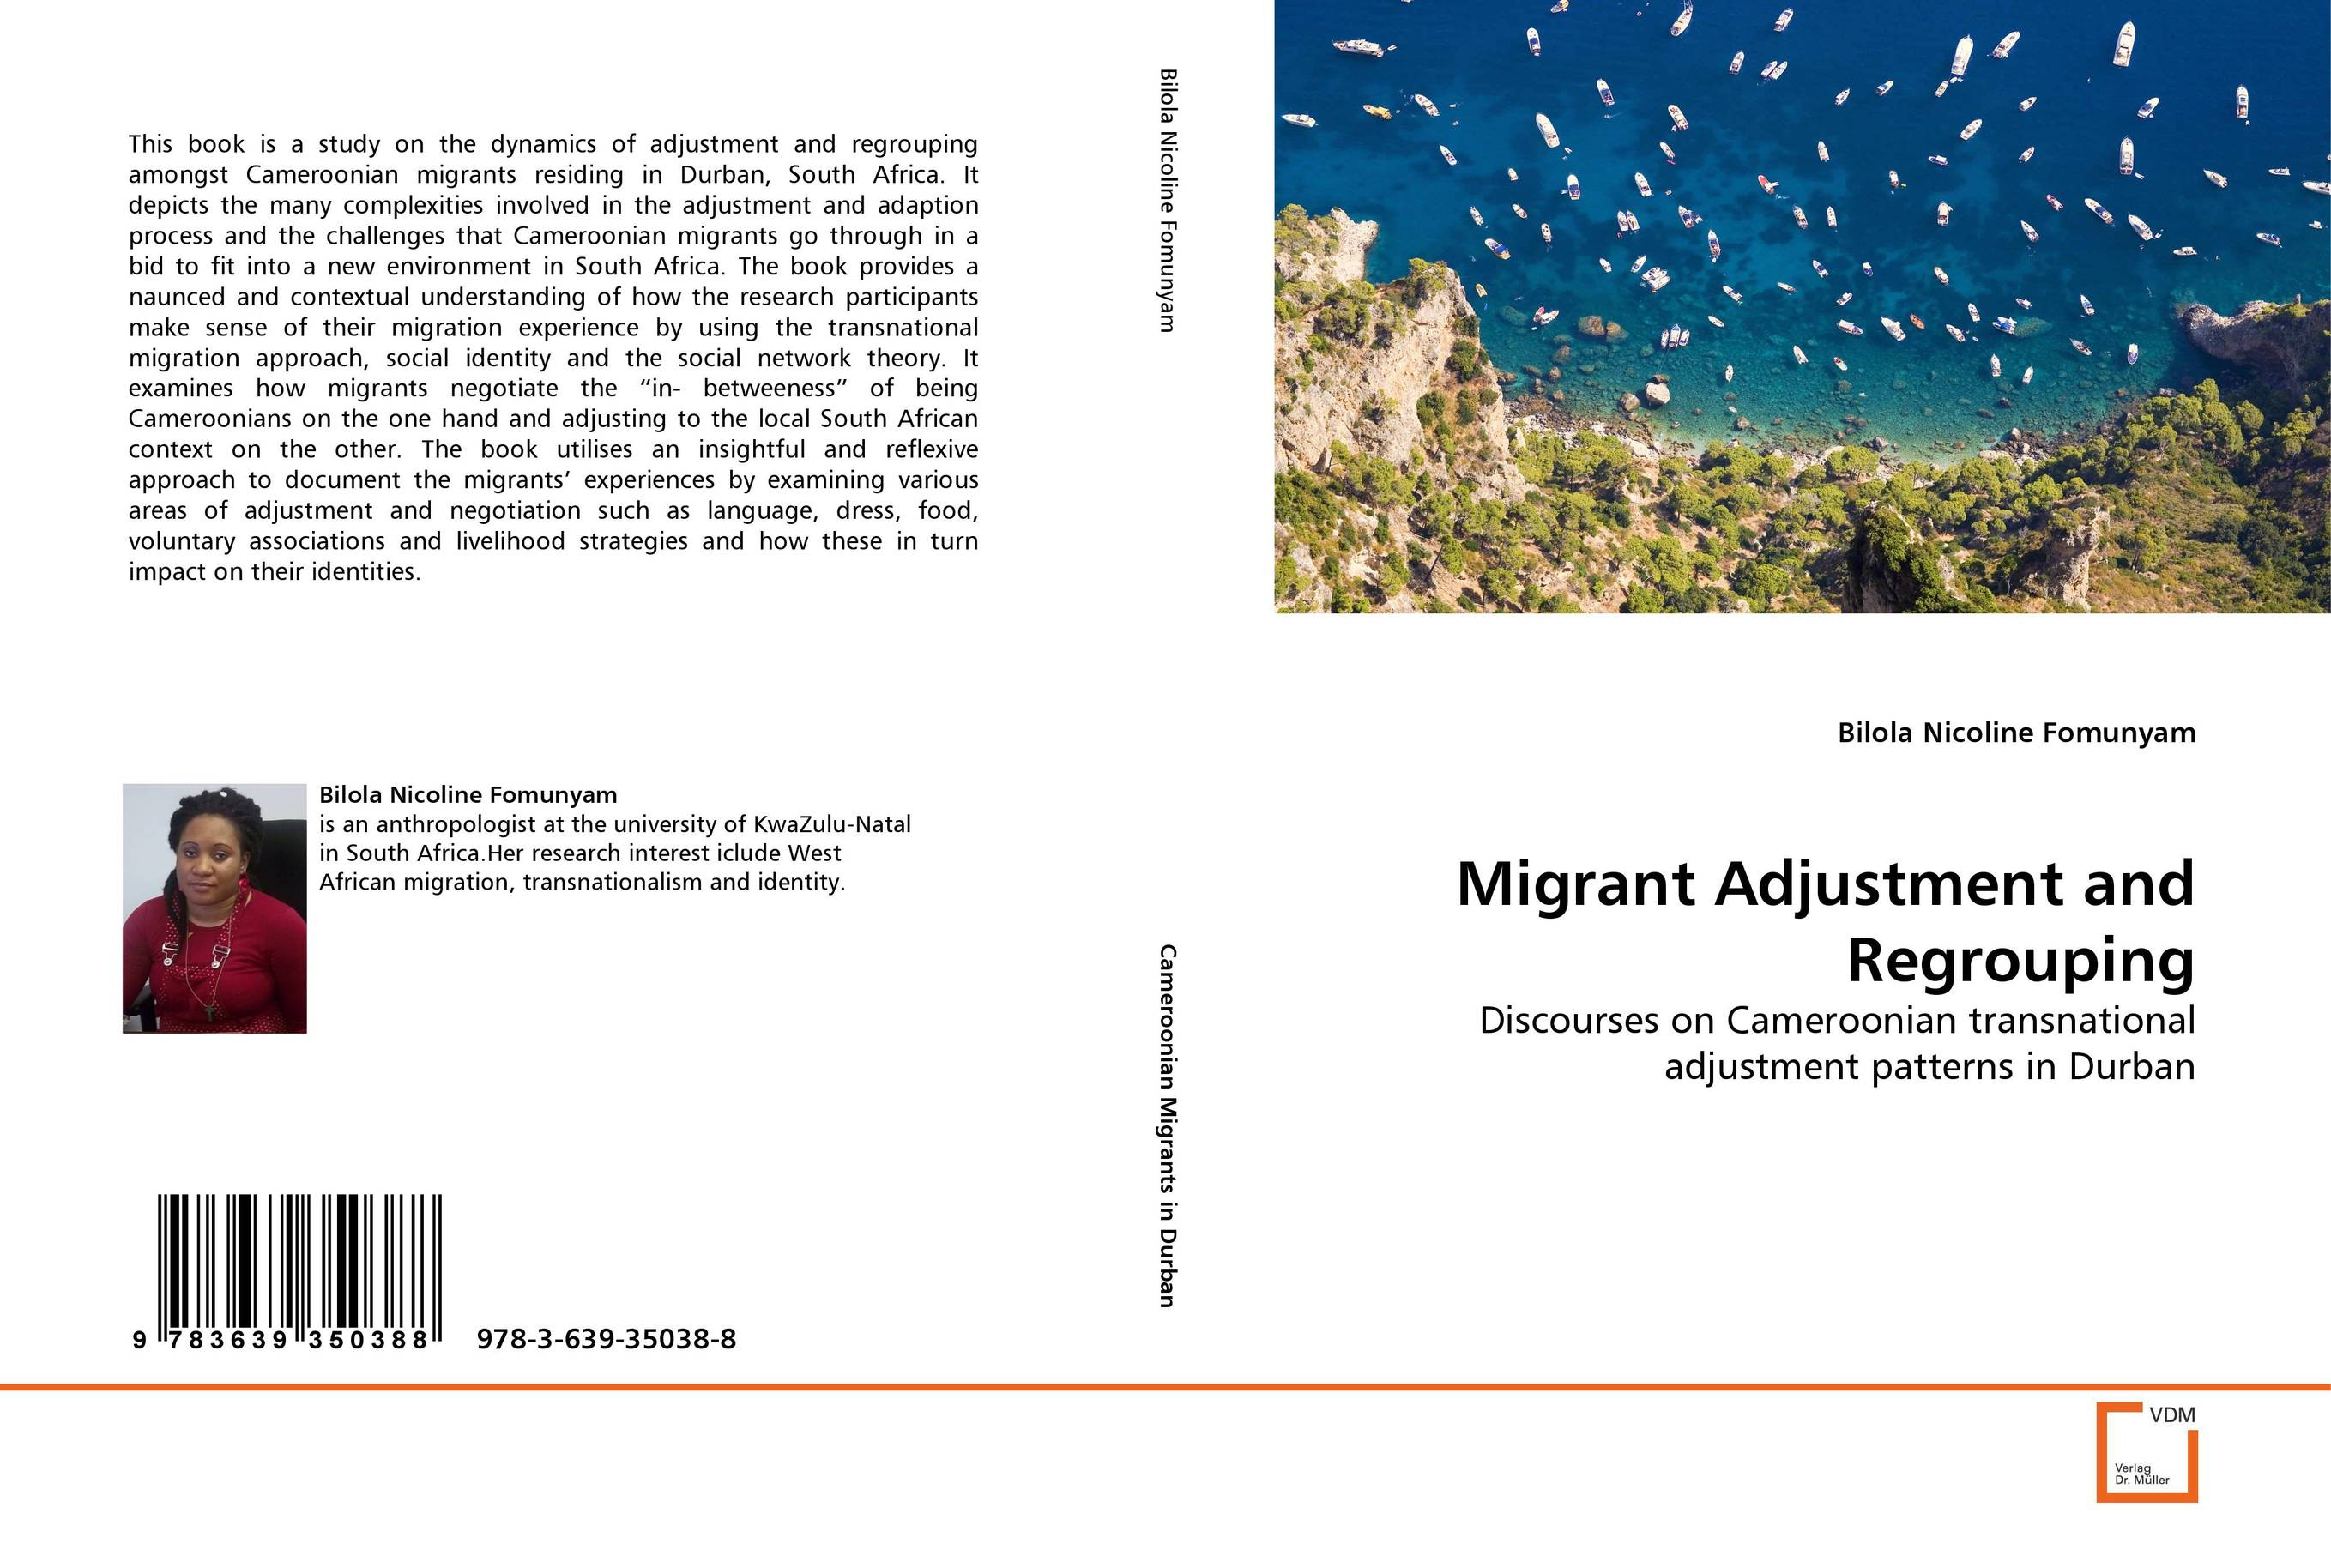 Migrant Adjustment and Regrouping